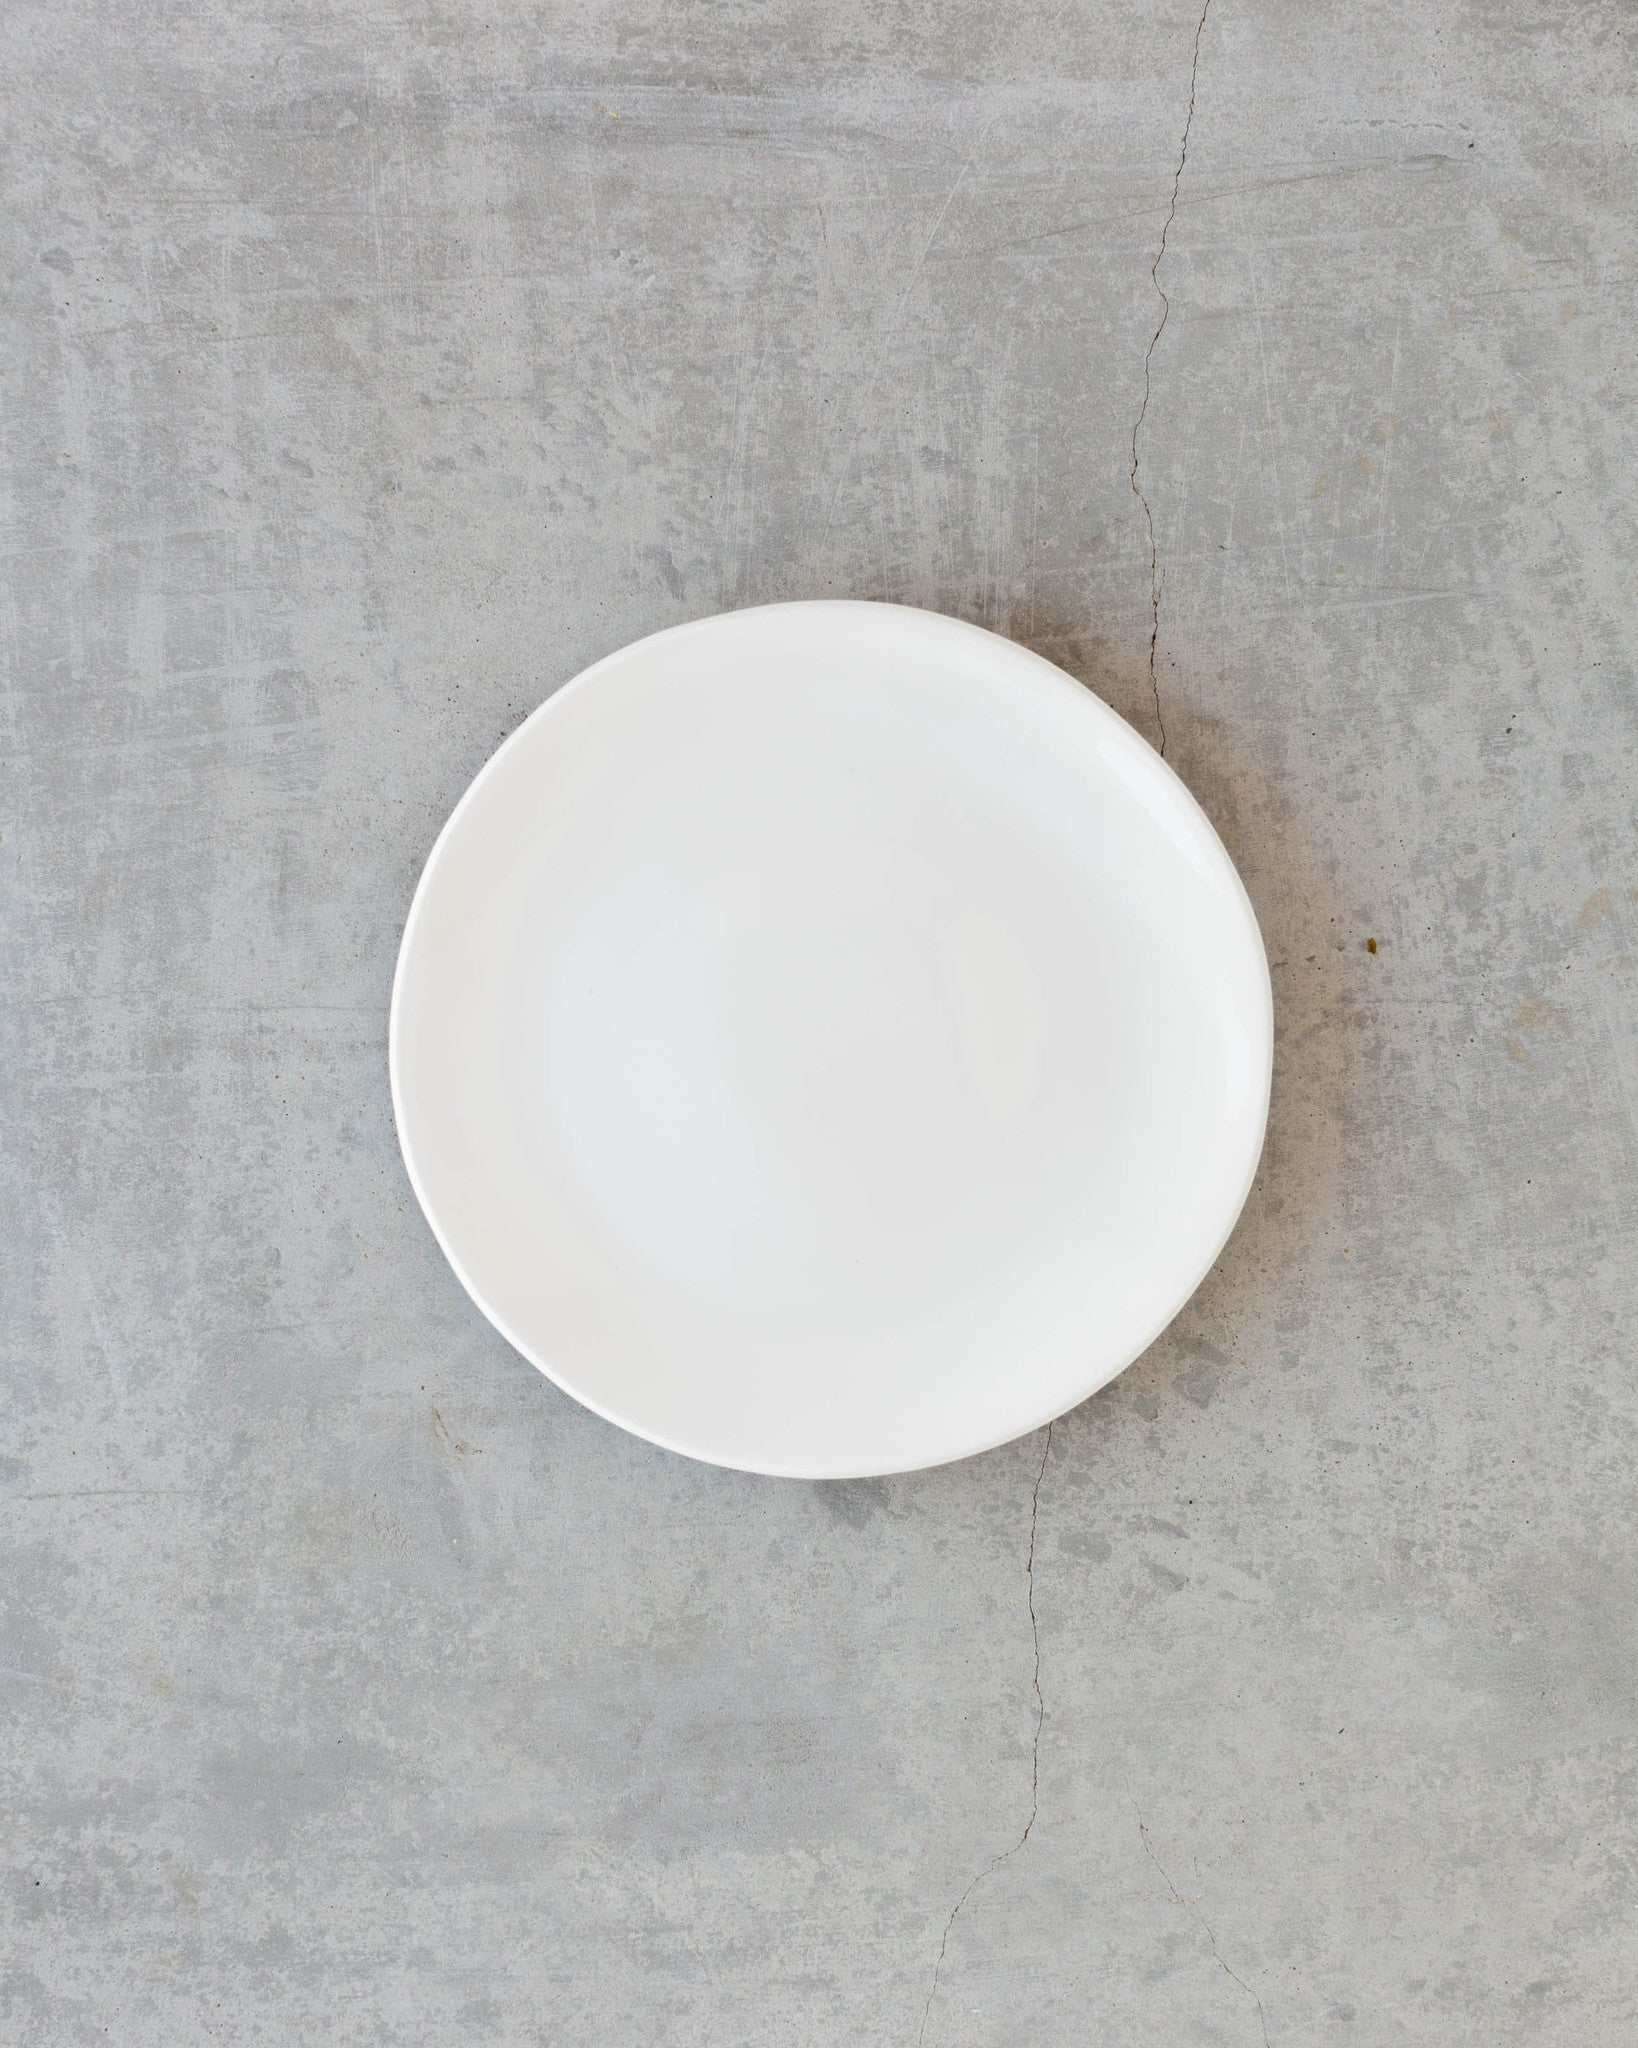 Dahlhaus Small White Plate